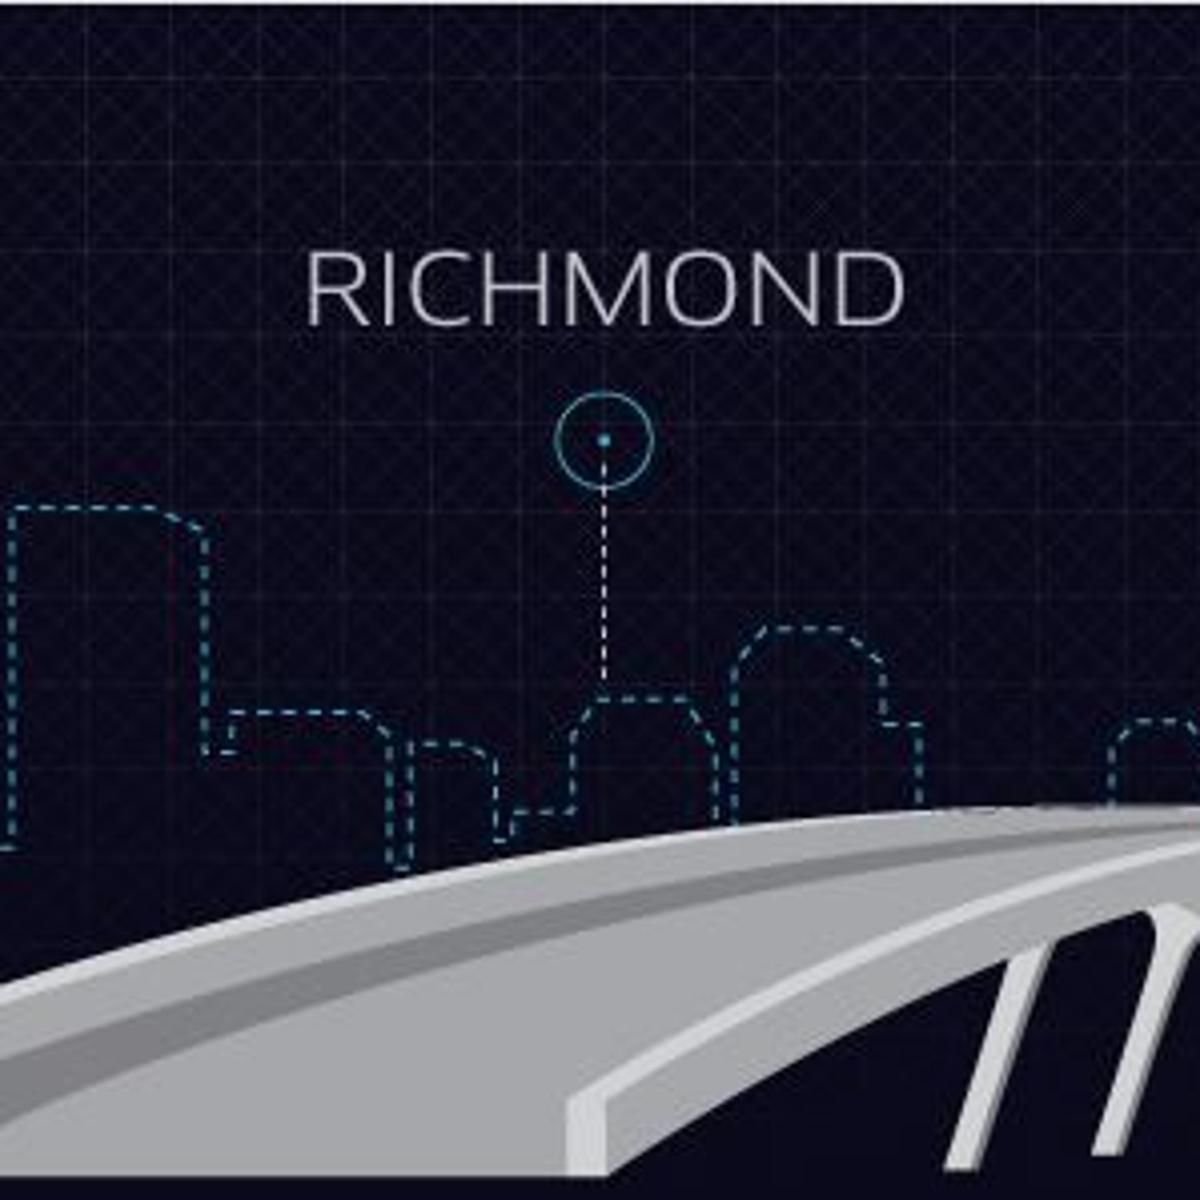 Uber, Cheap Taxi Service & App, Coming to Richmond | City